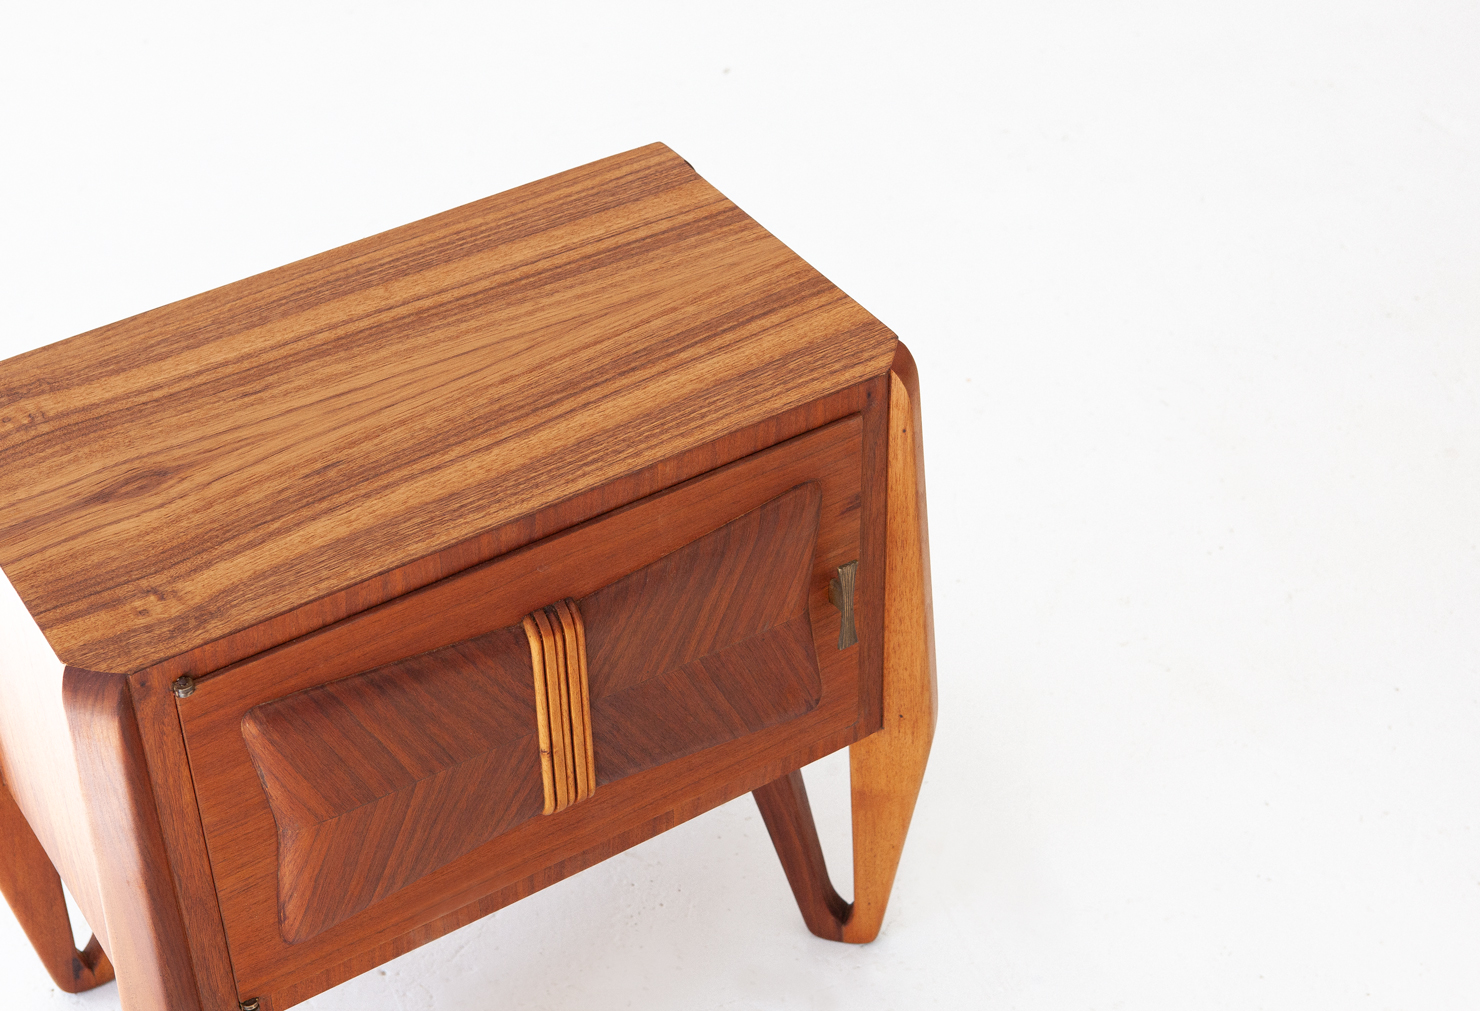 1950s-italian-teak-nightstands-8-bt79